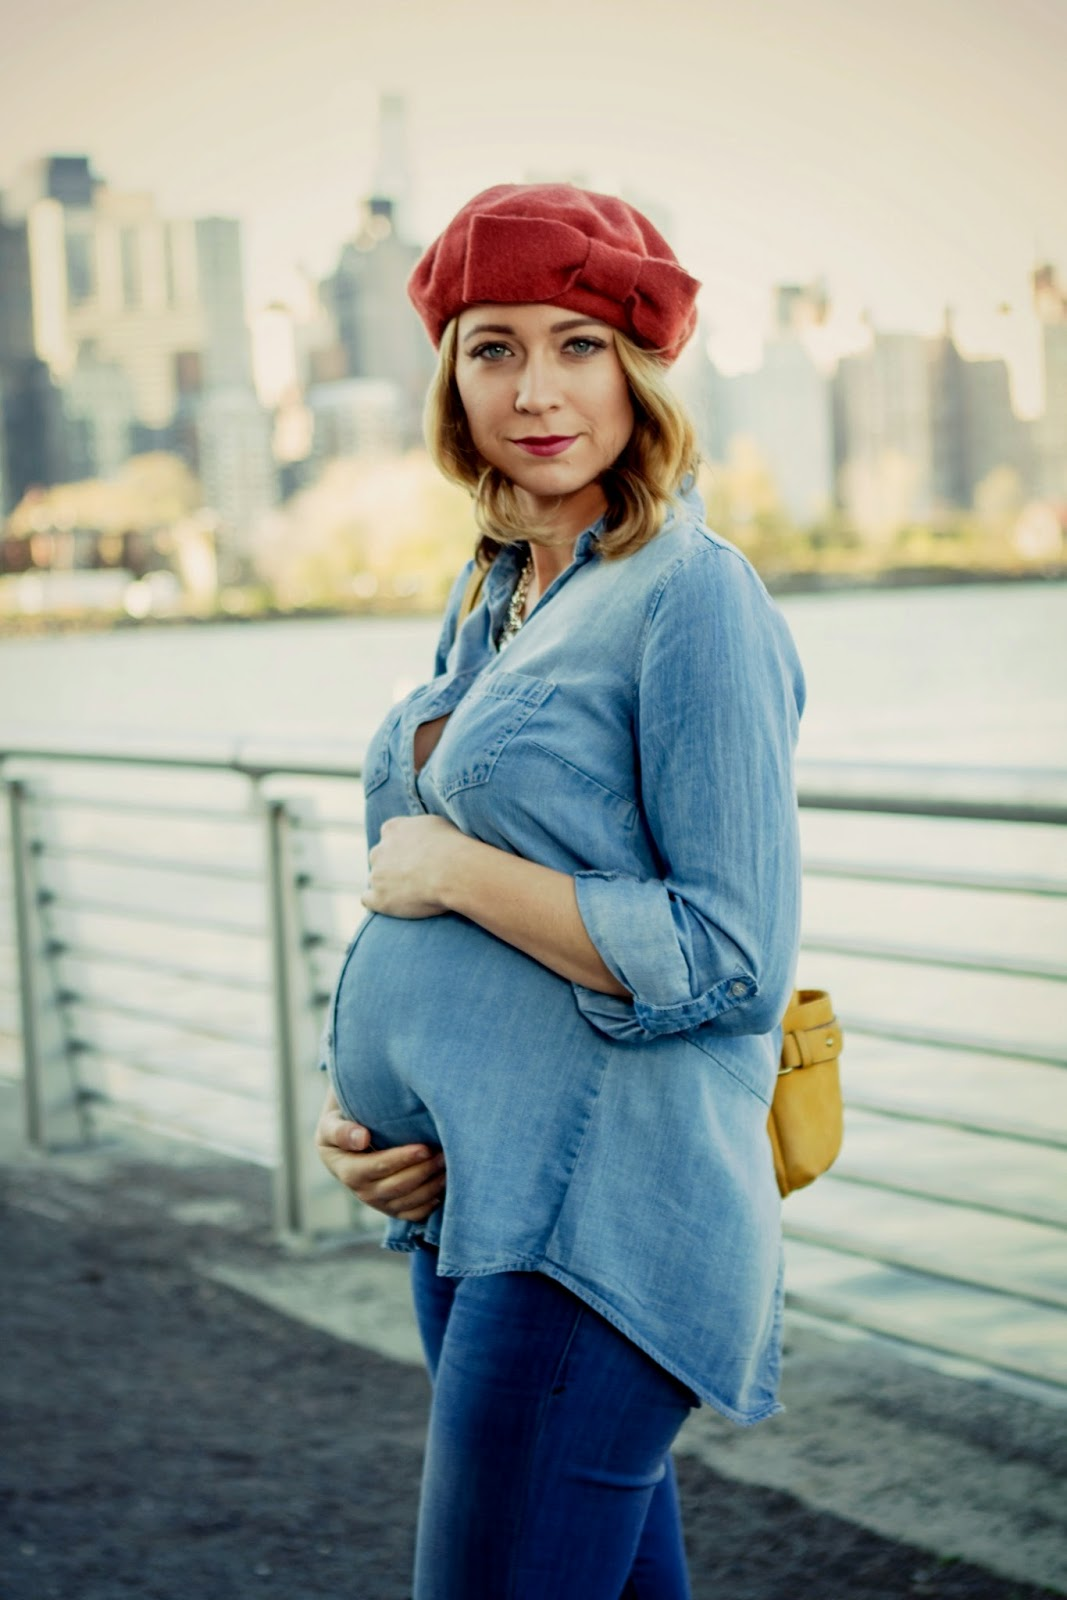 Her name is sylvia october 2014 i paired my favorite gap jeans with this cute wendy bellissimo denim top which i got from motherhood maternity i decided to dress this denim outfit up ombrellifo Choice Image